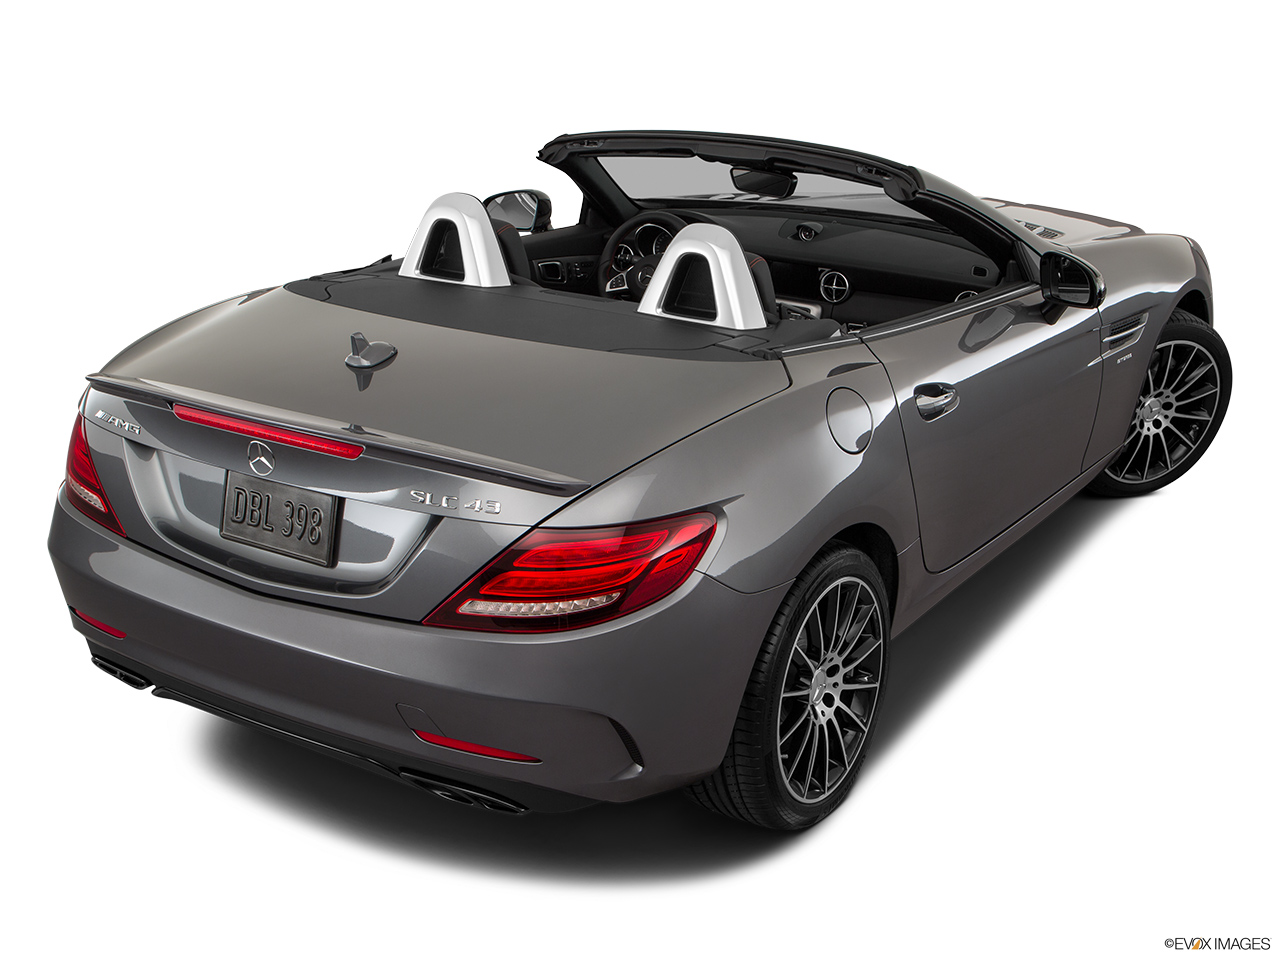 2019 Mercedes-Benz SLC-class SLC43 AMG Rear 3/4 angle view.